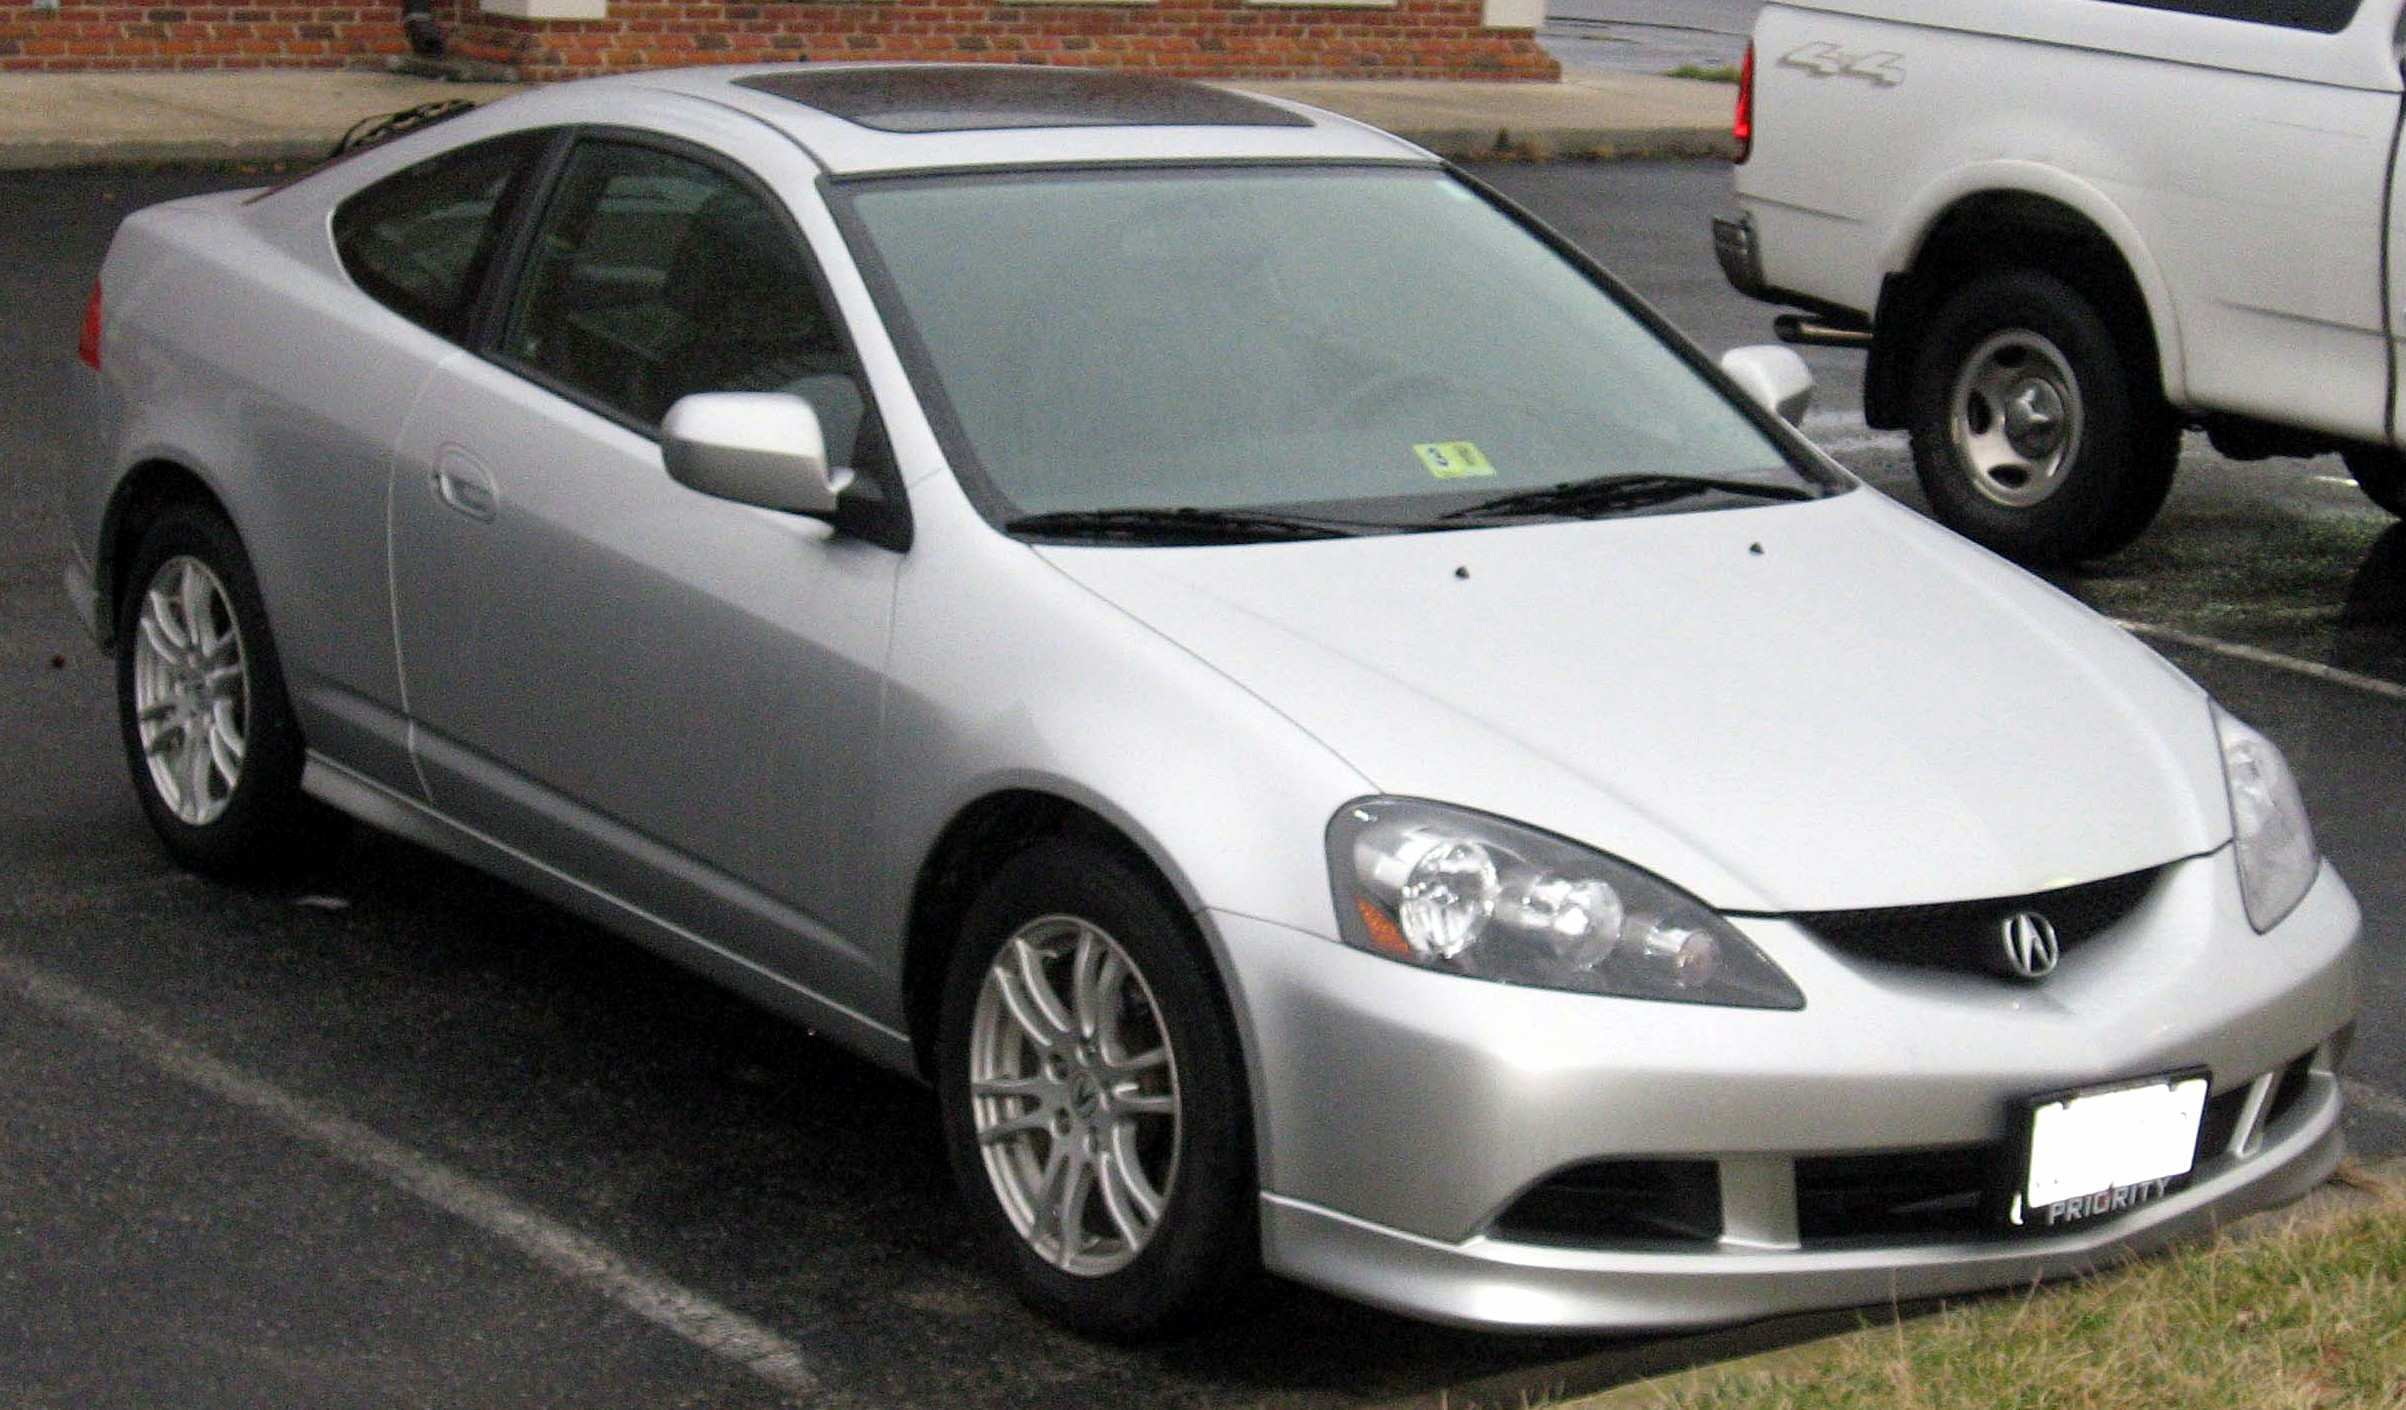 35 Concept of Acura Rsx Images Picture for Acura Rsx Images